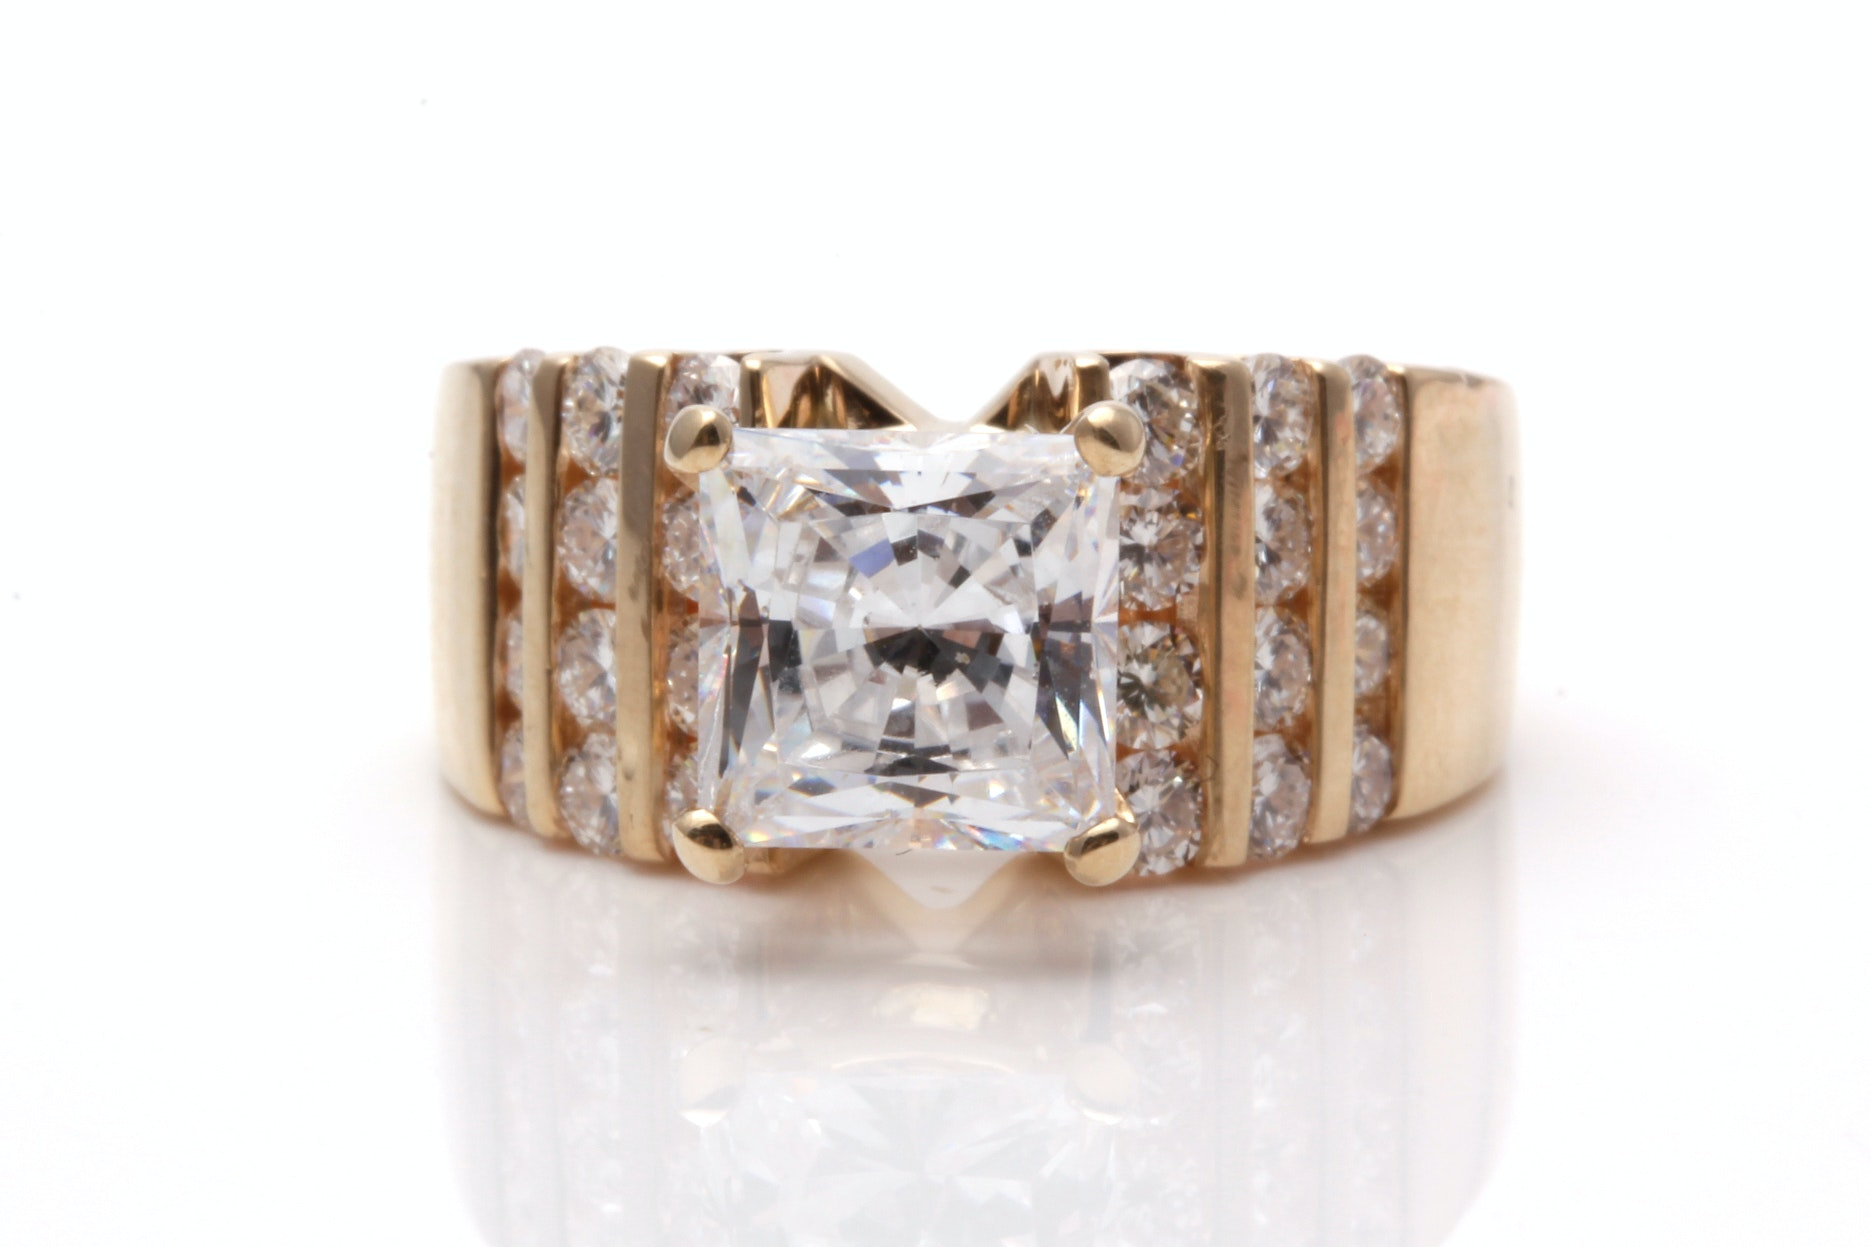 14K Yellow Gold Semi Mount Diamond Ring With Cubic Zirconia Center Stone